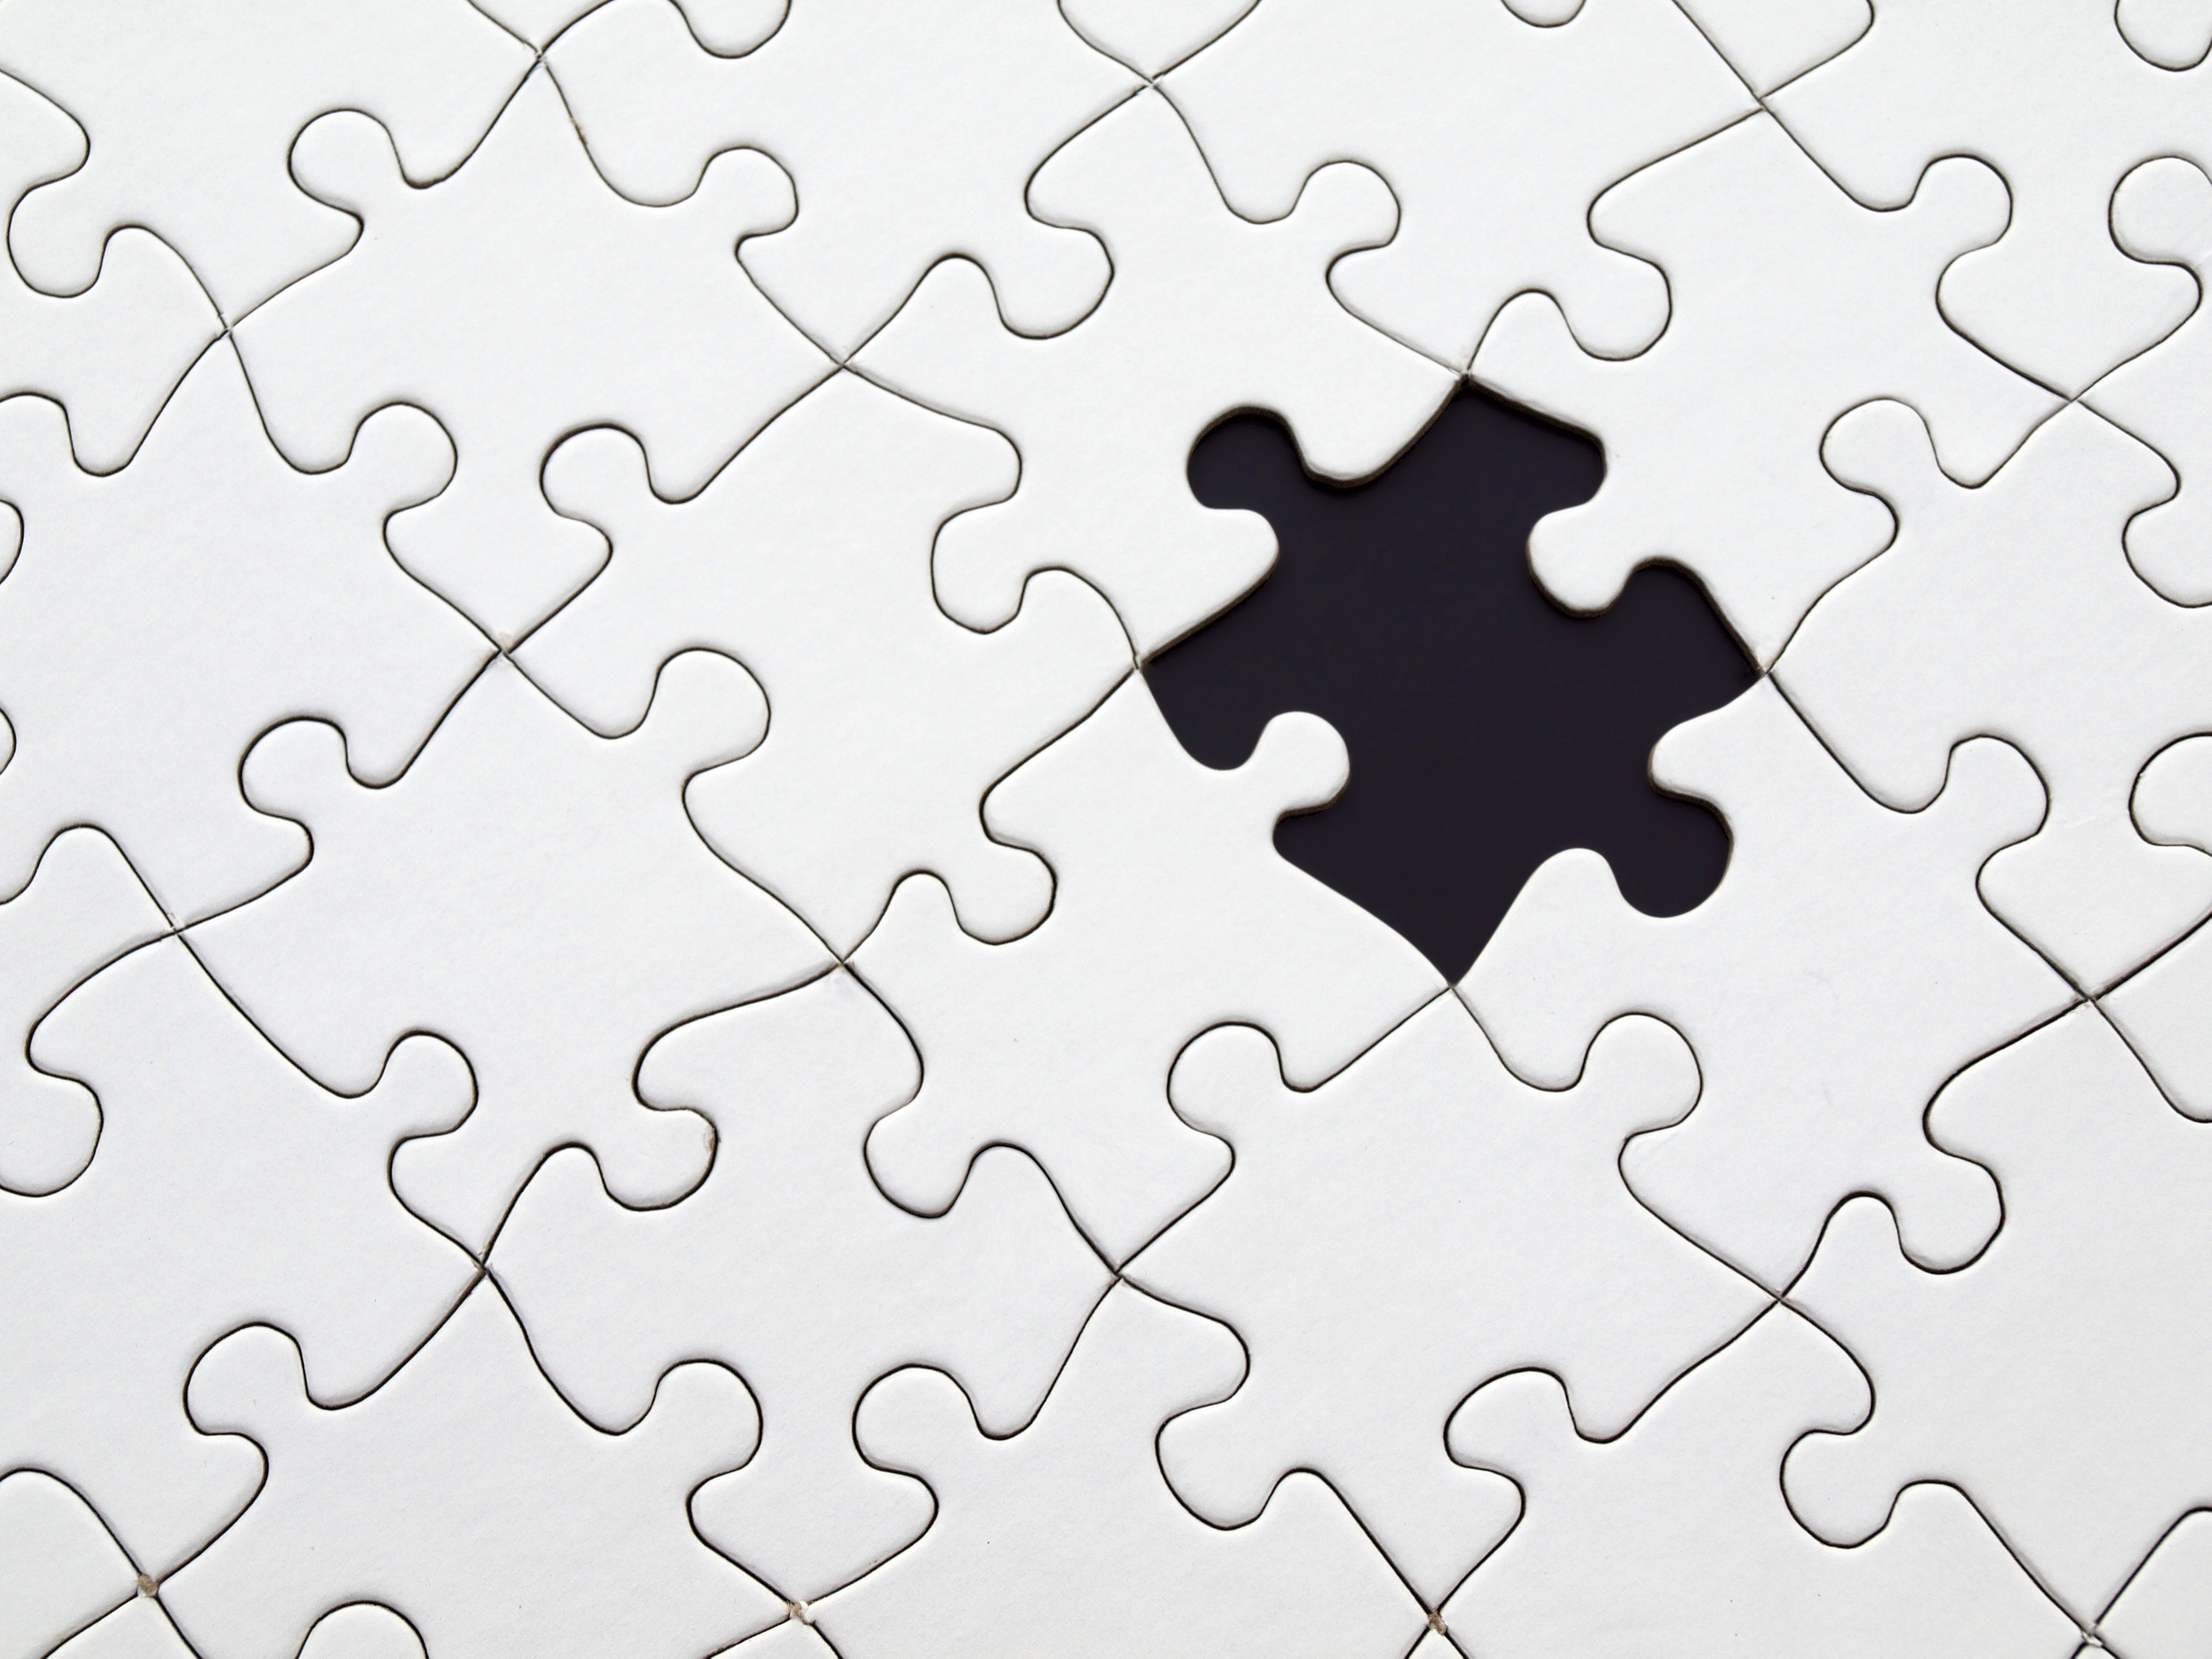 Image Of A Completed Blank Puzzle That is Missing One Puzzle Piece In The Left-Hand Corner